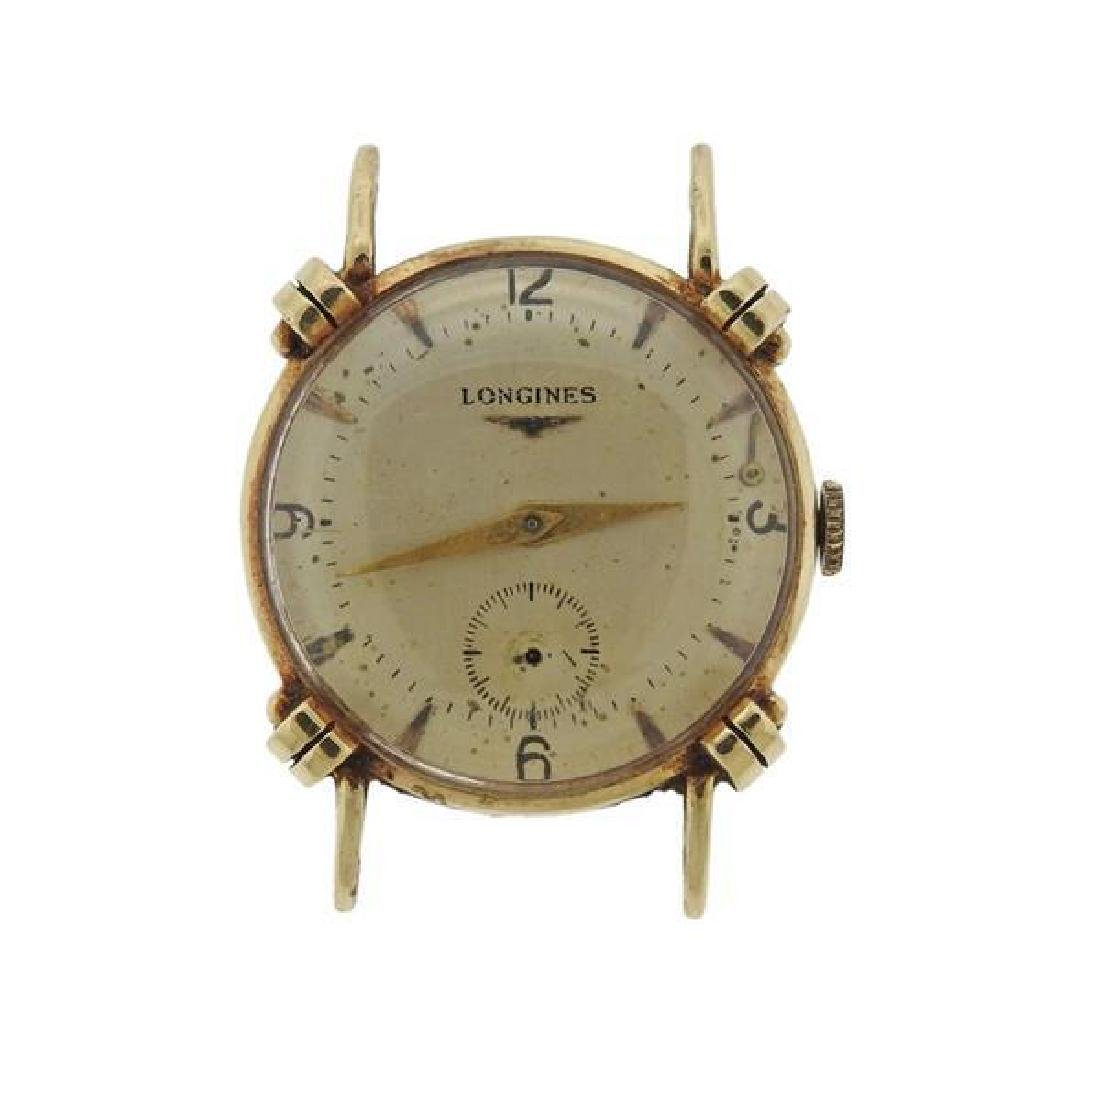 Vintage Longines 14k Gold Manual Wind Watch